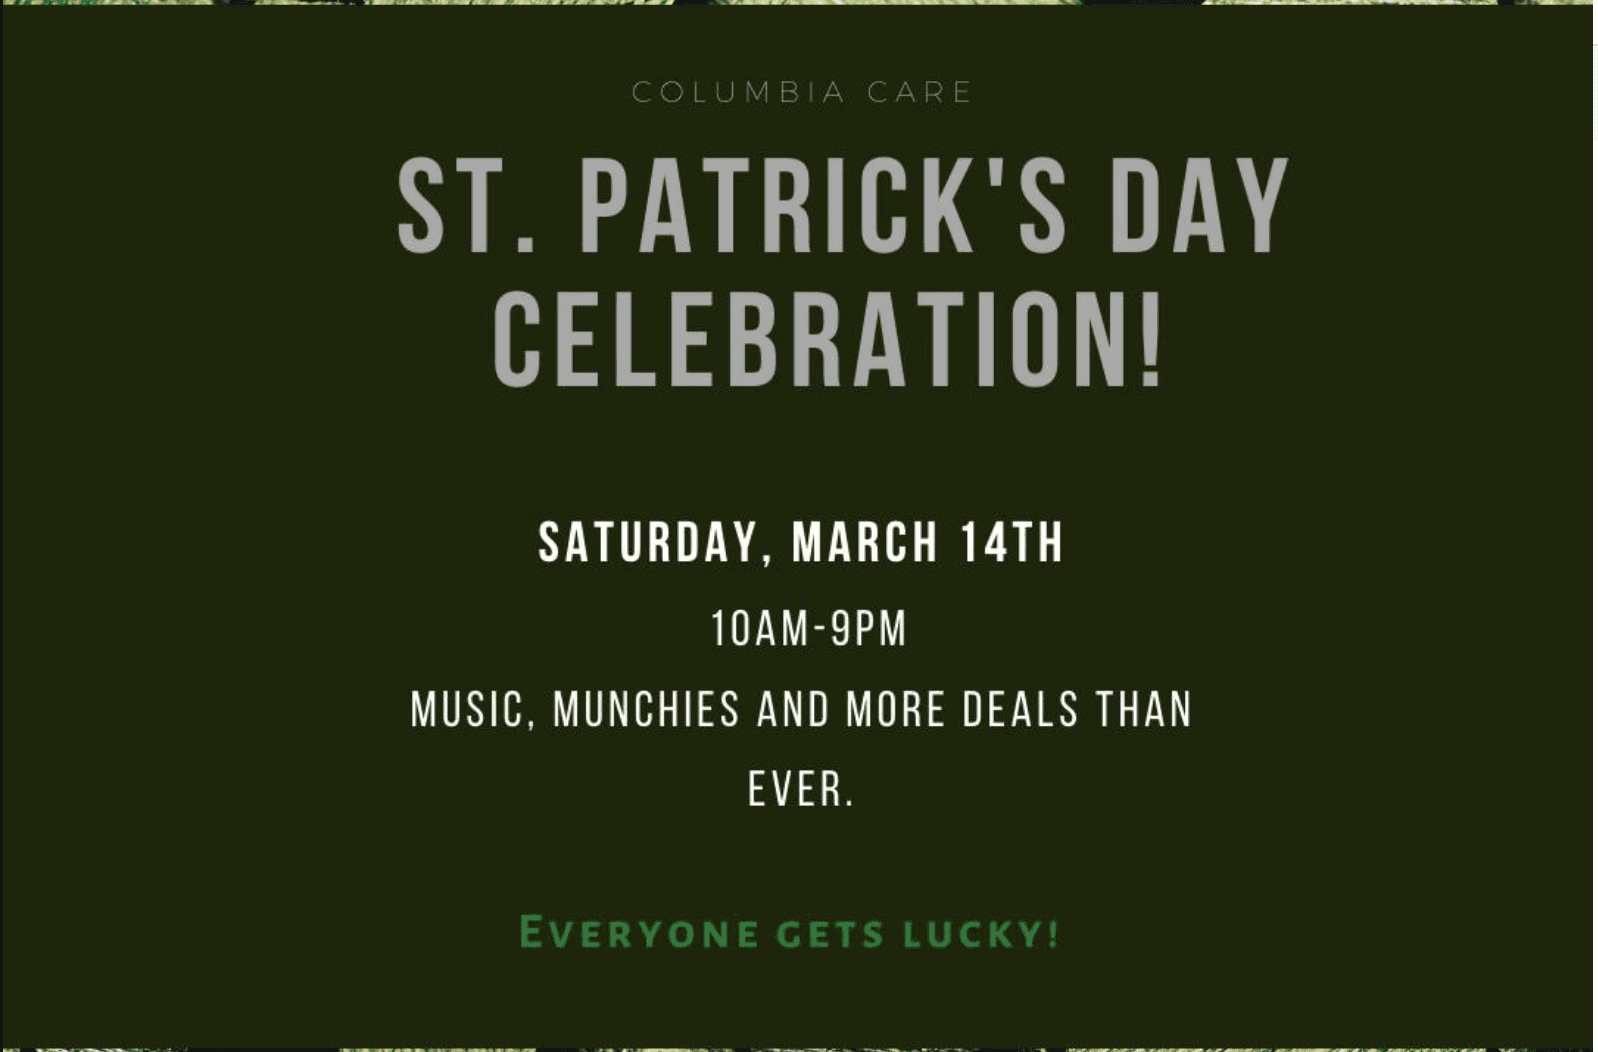 Get Lucky at Columbia Care's St Patty's Day Celebration